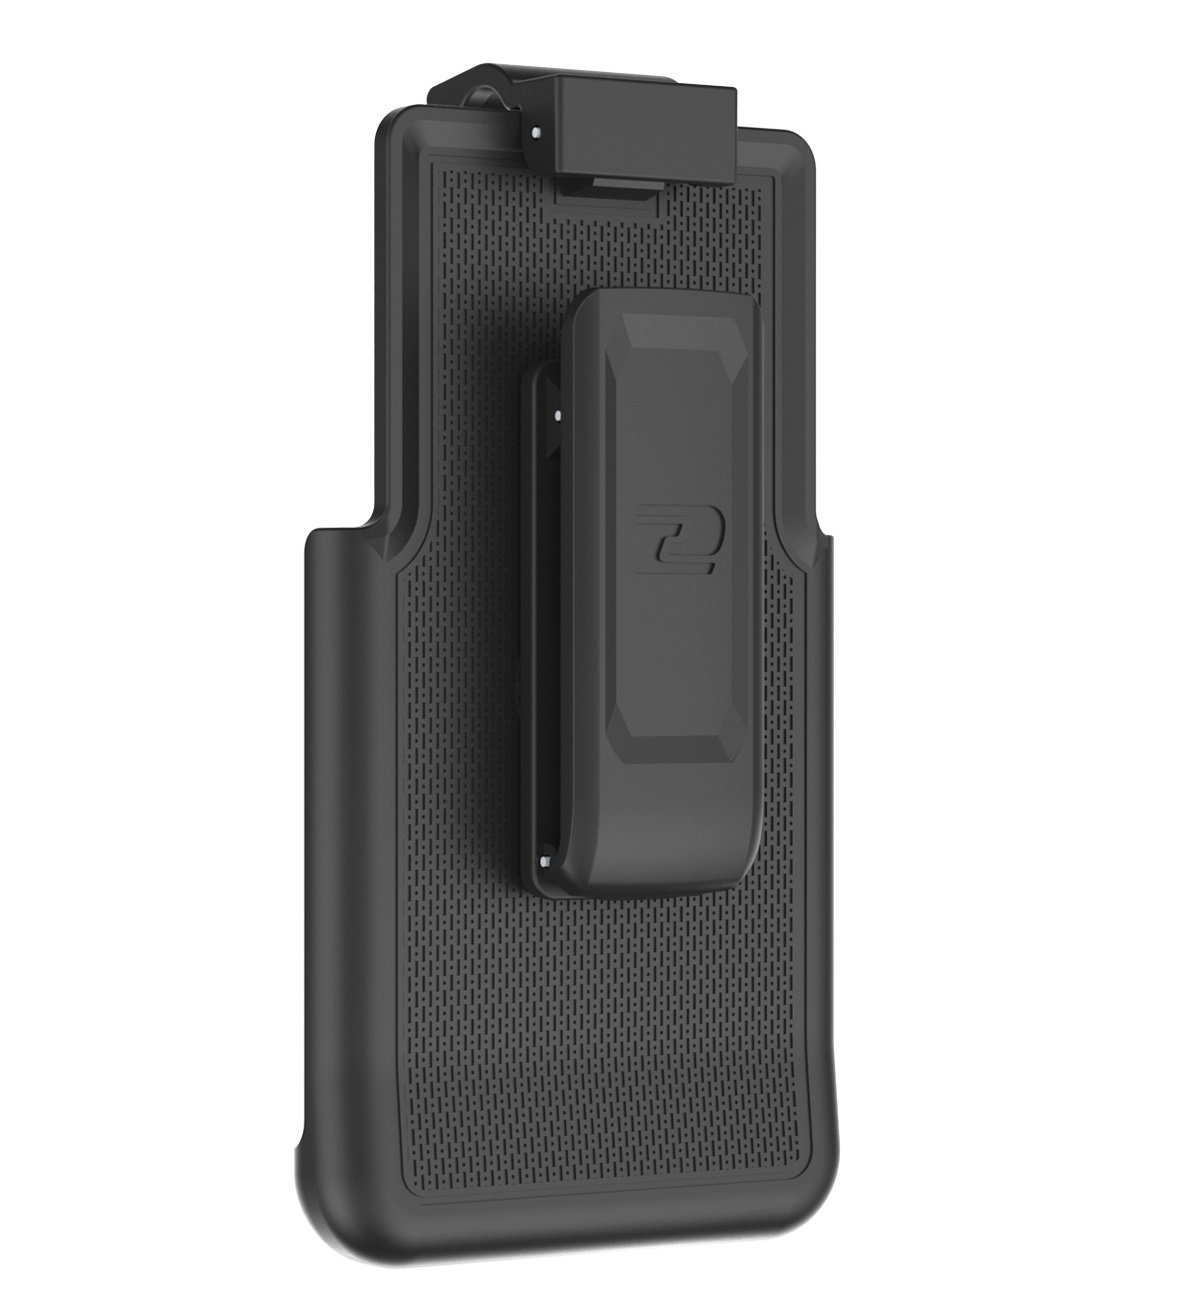 cheaper 1498d 56b7a Belt Clip Holster for Speck CandyShell & CandyShell Grip Series - iPhone  6/6s (case not included) (By Encased)